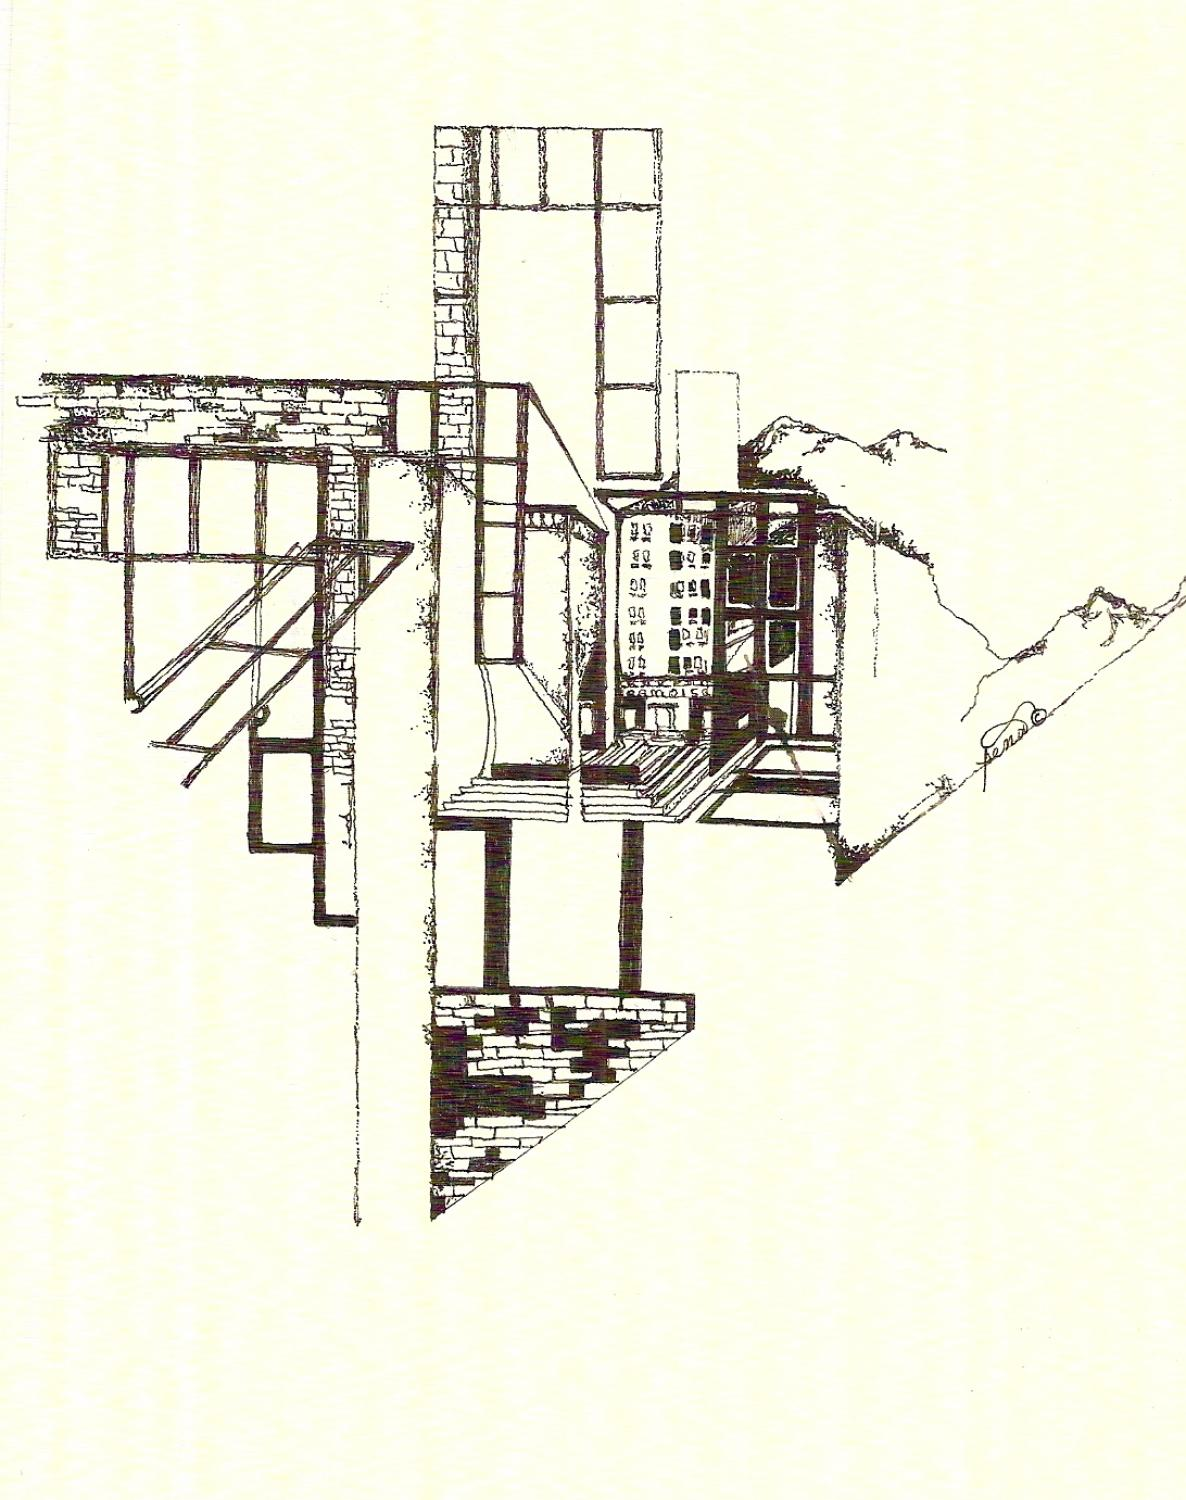 Pen & ink drawing 11 city scape